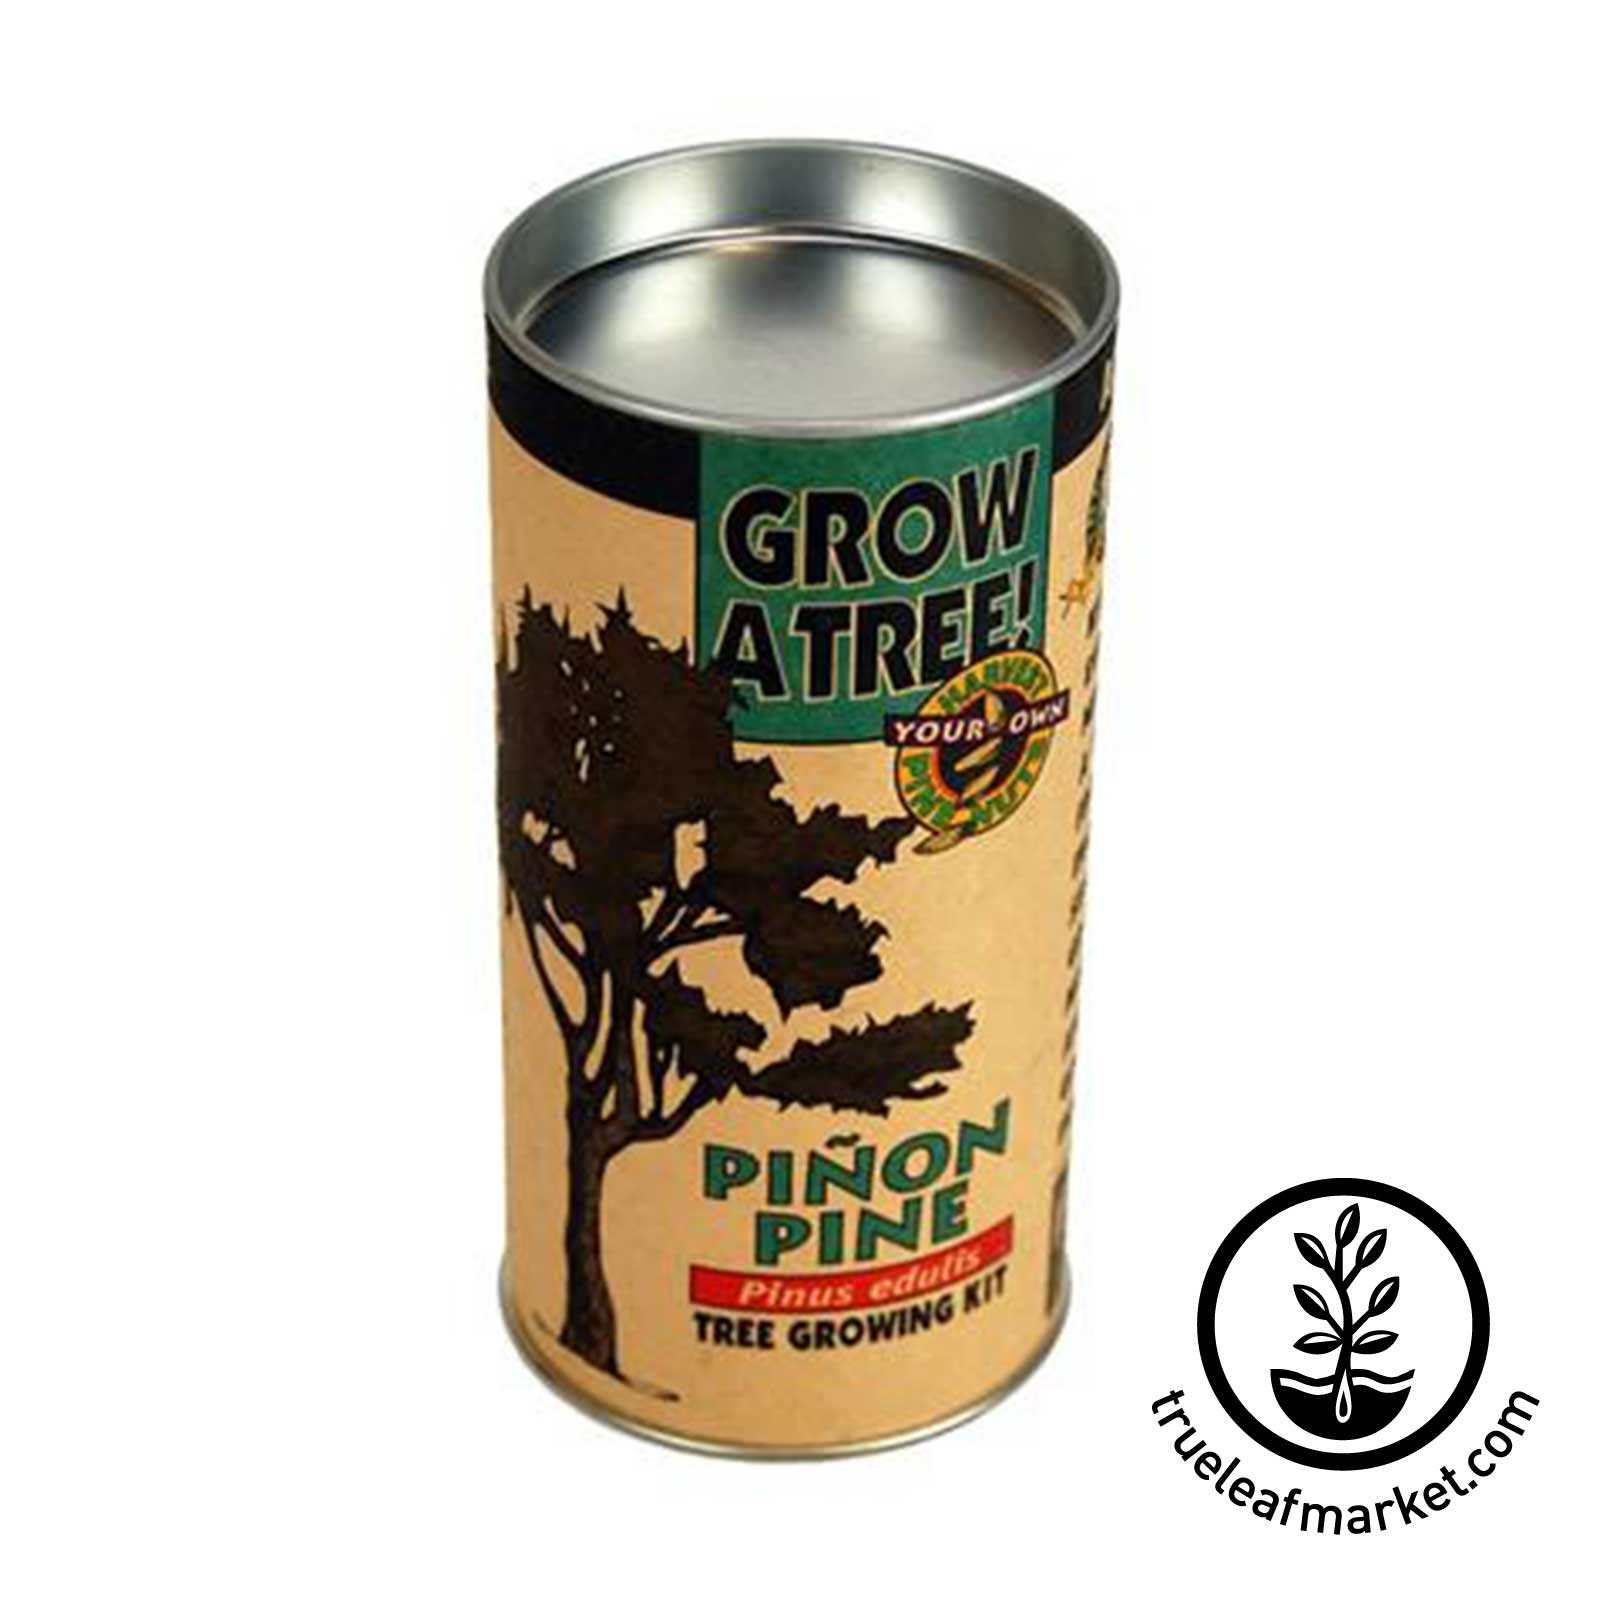 Pinon Pine Tree Kit tree, kit, trees, pinon, pine, seeds